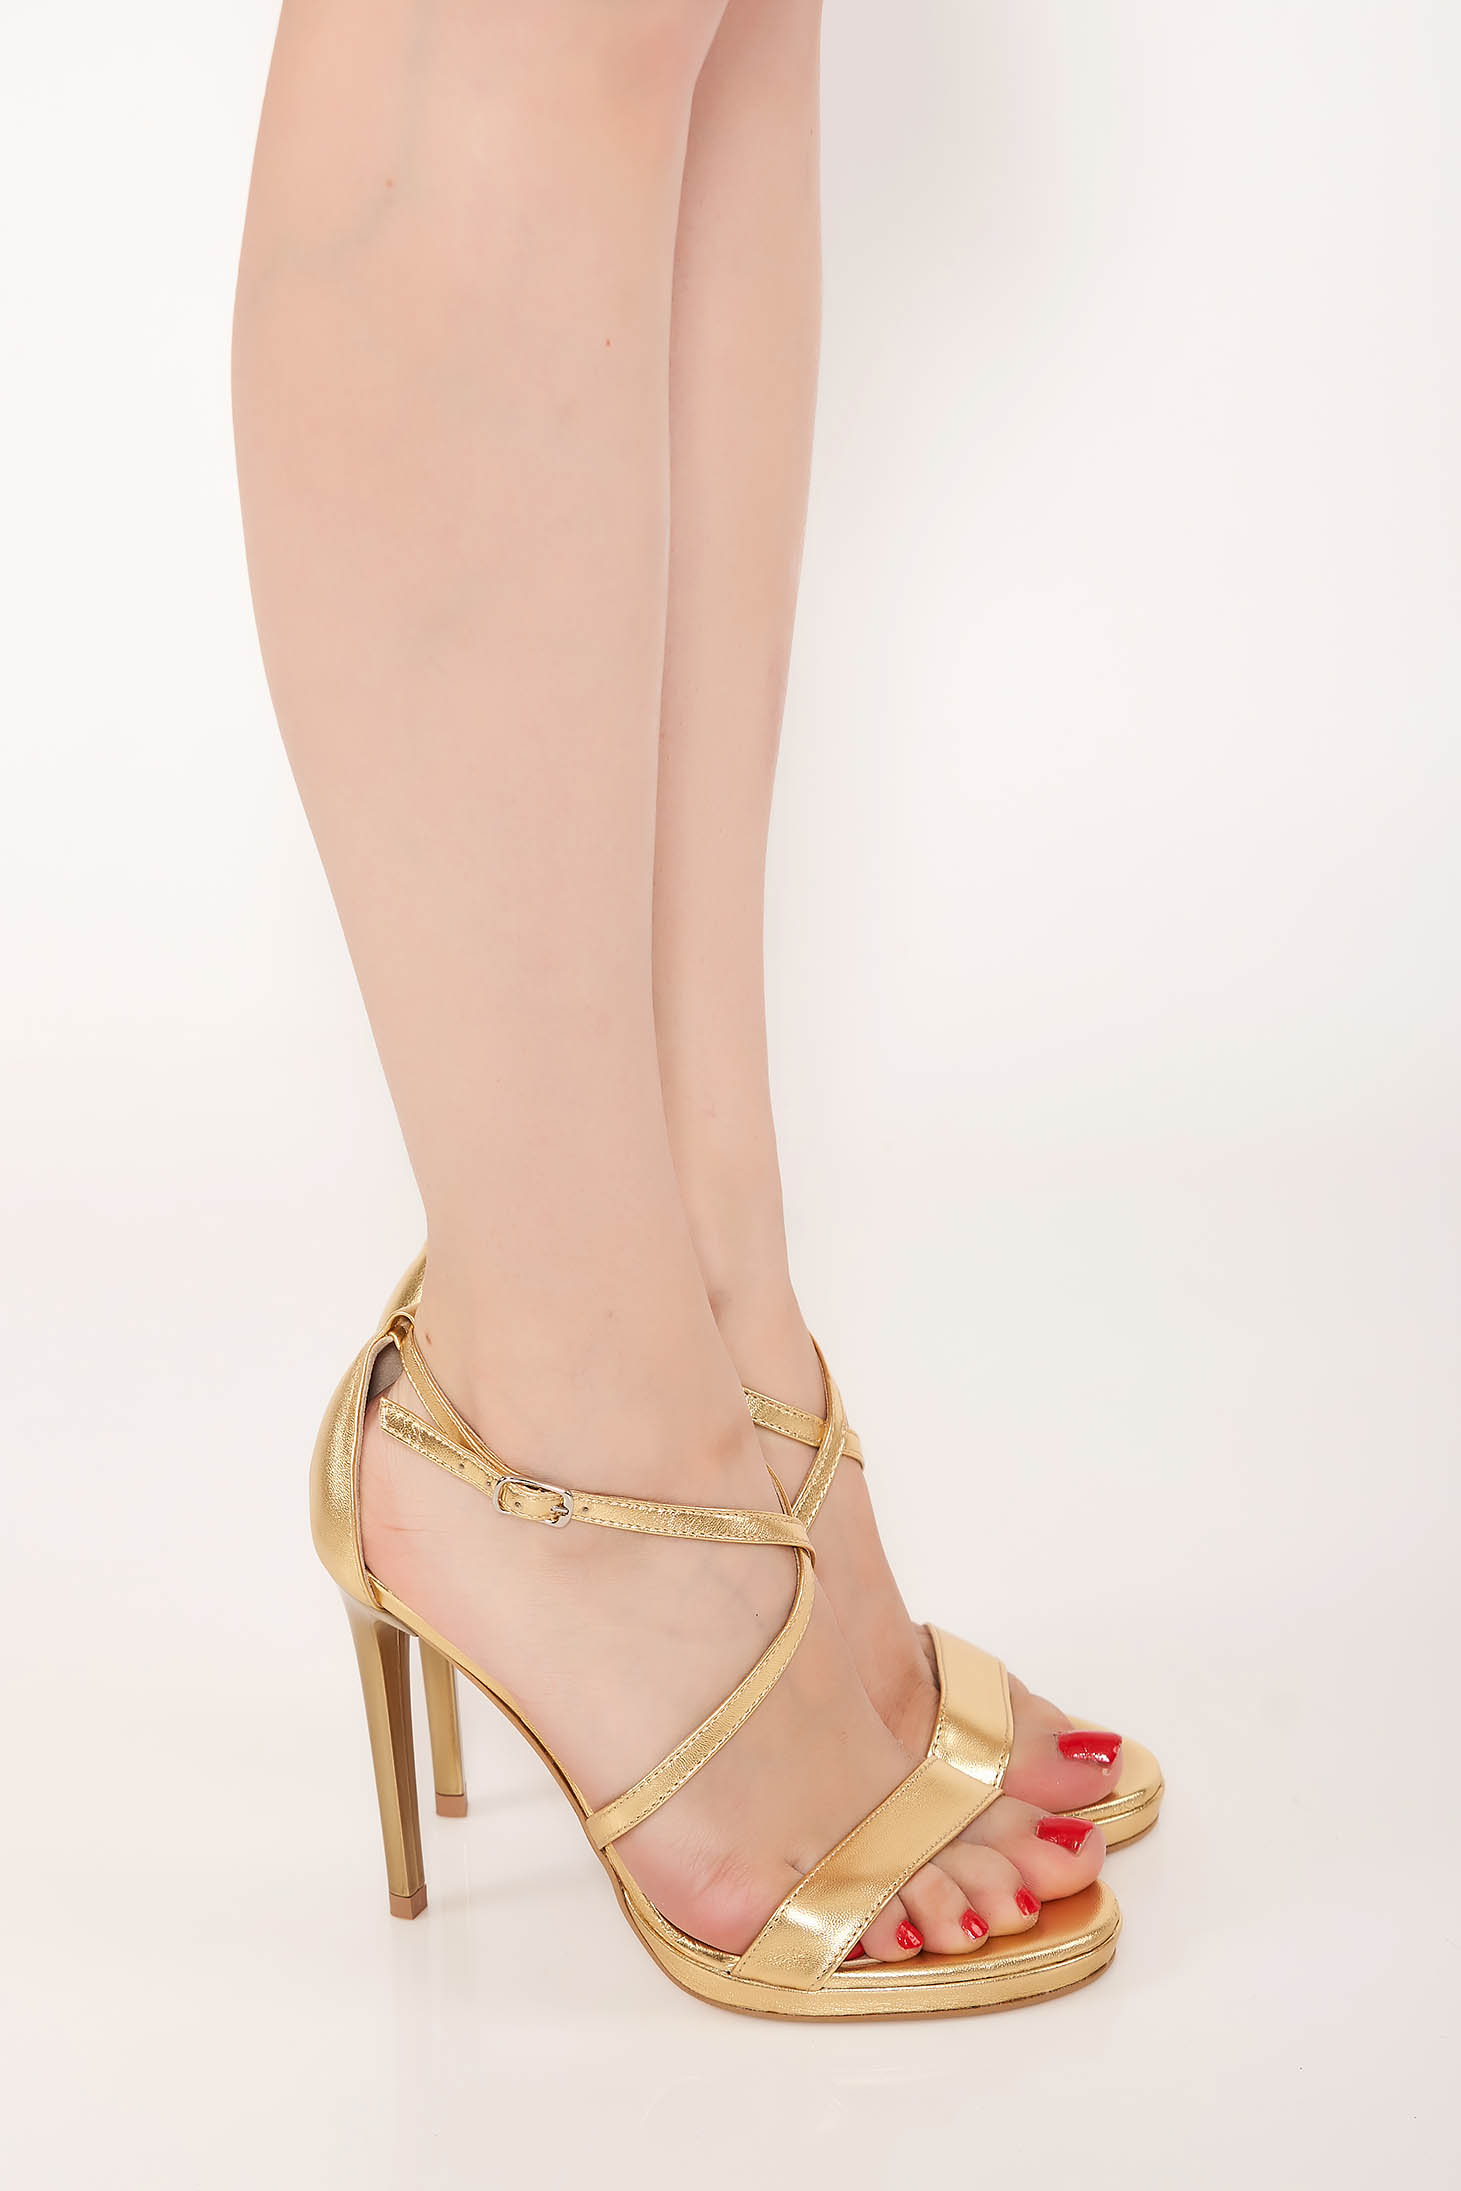 Elegant gold sandals from natural leather with thin straps